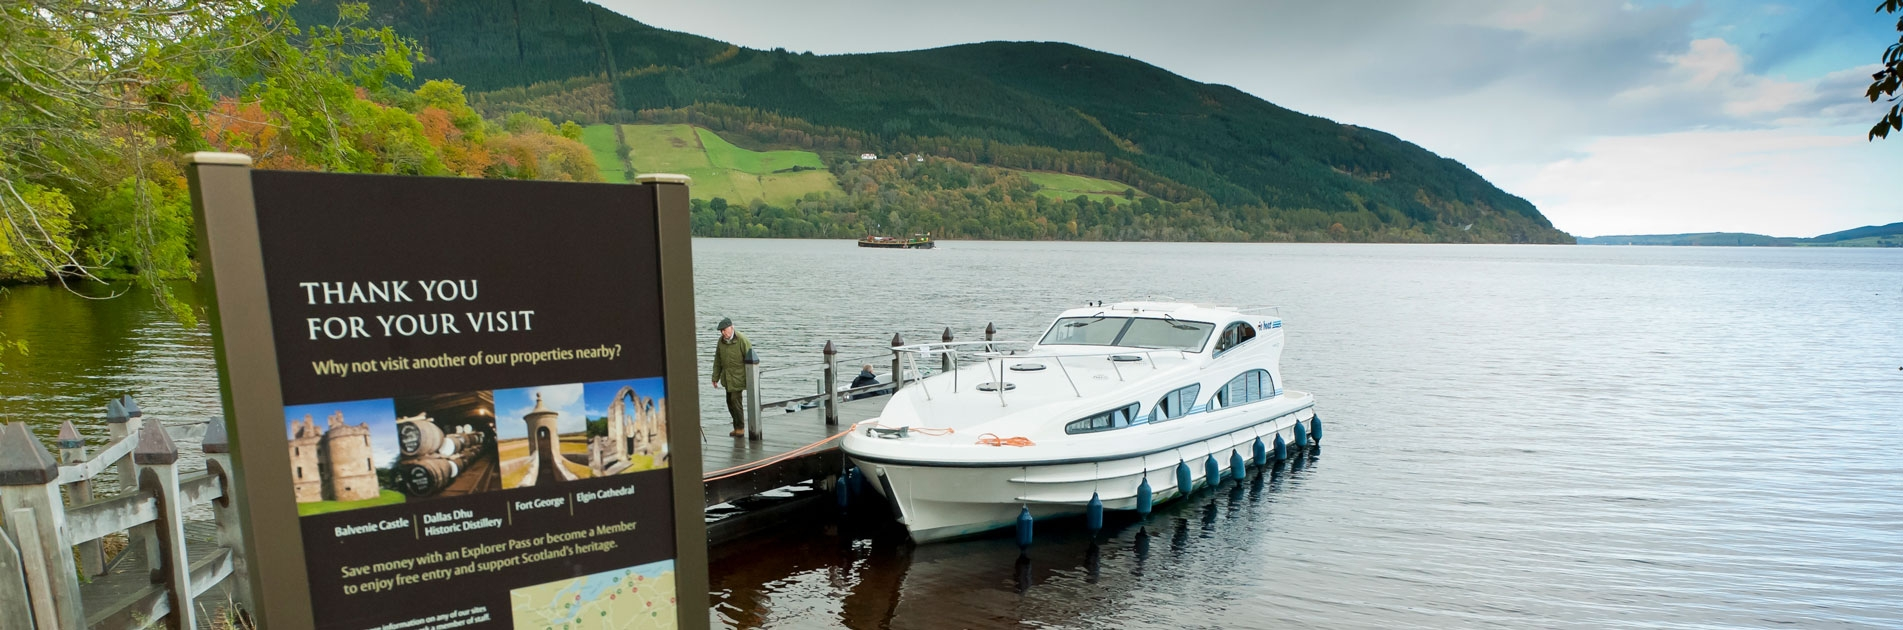 Riverboat moored in Scotland